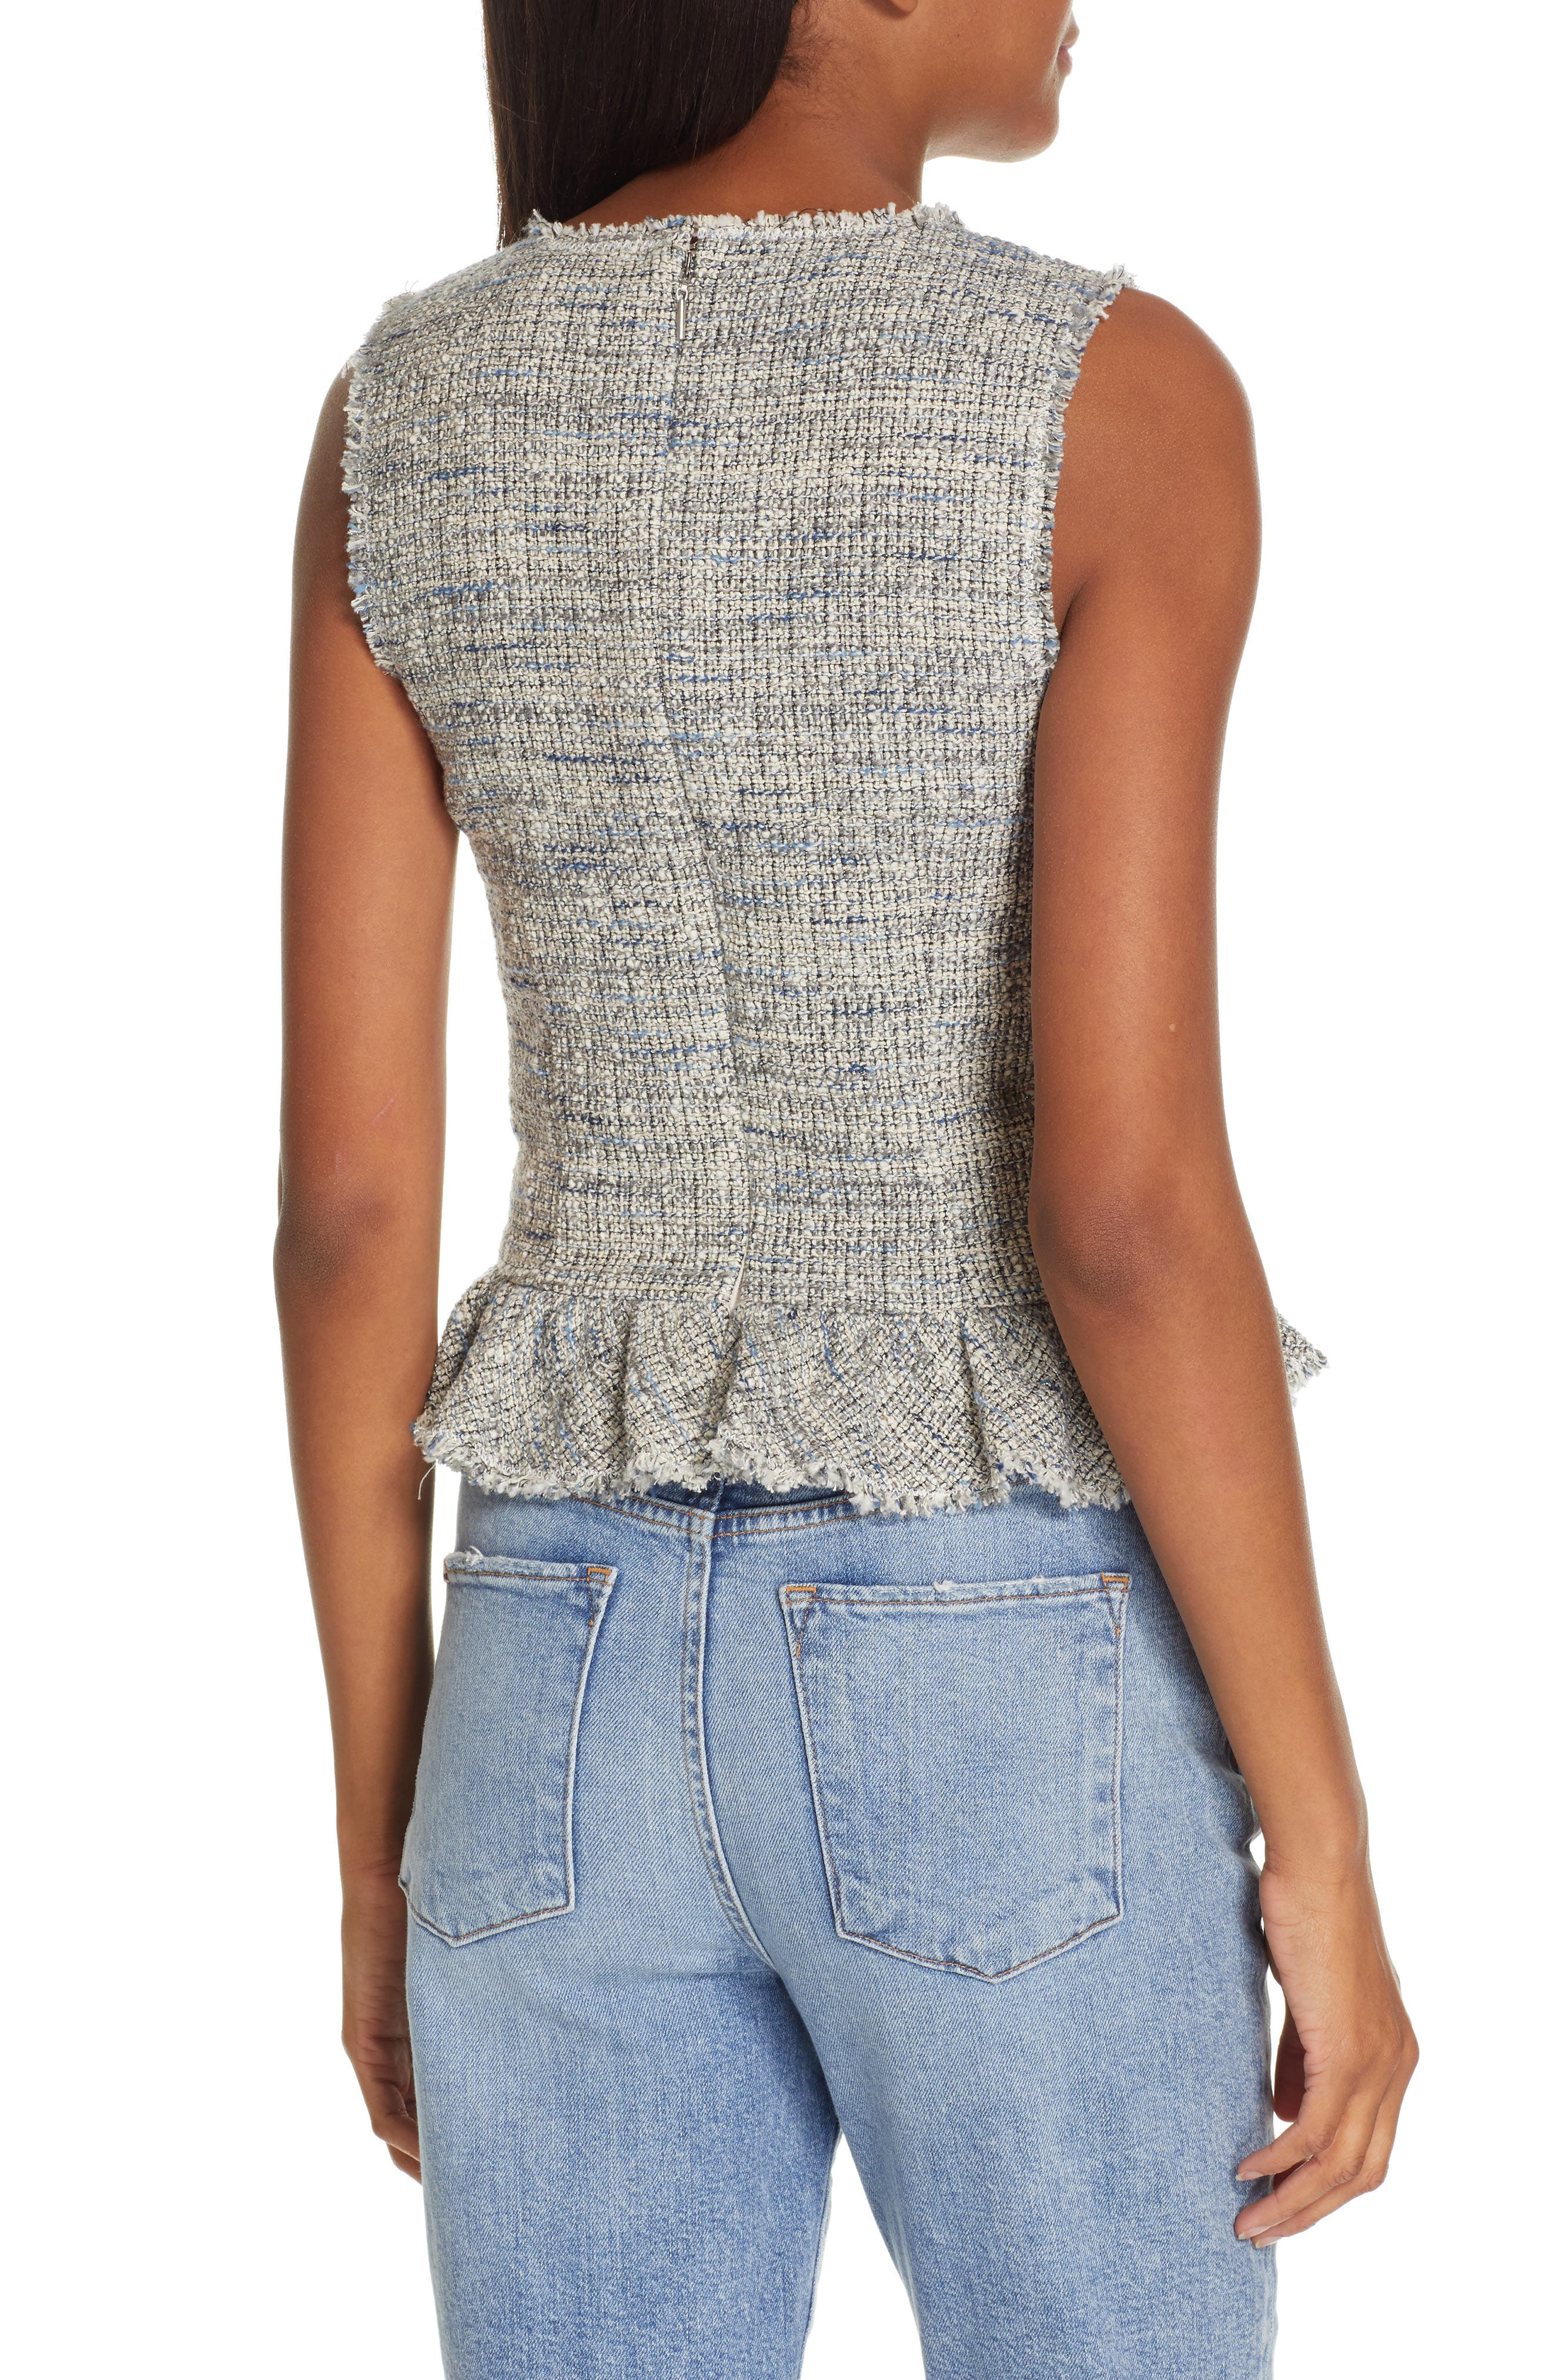 REBECCA TAYLOR, Sleeveless Tweed Peplum Top, Alternate thumbnail 2, color, BLUE/ GREY COMBO